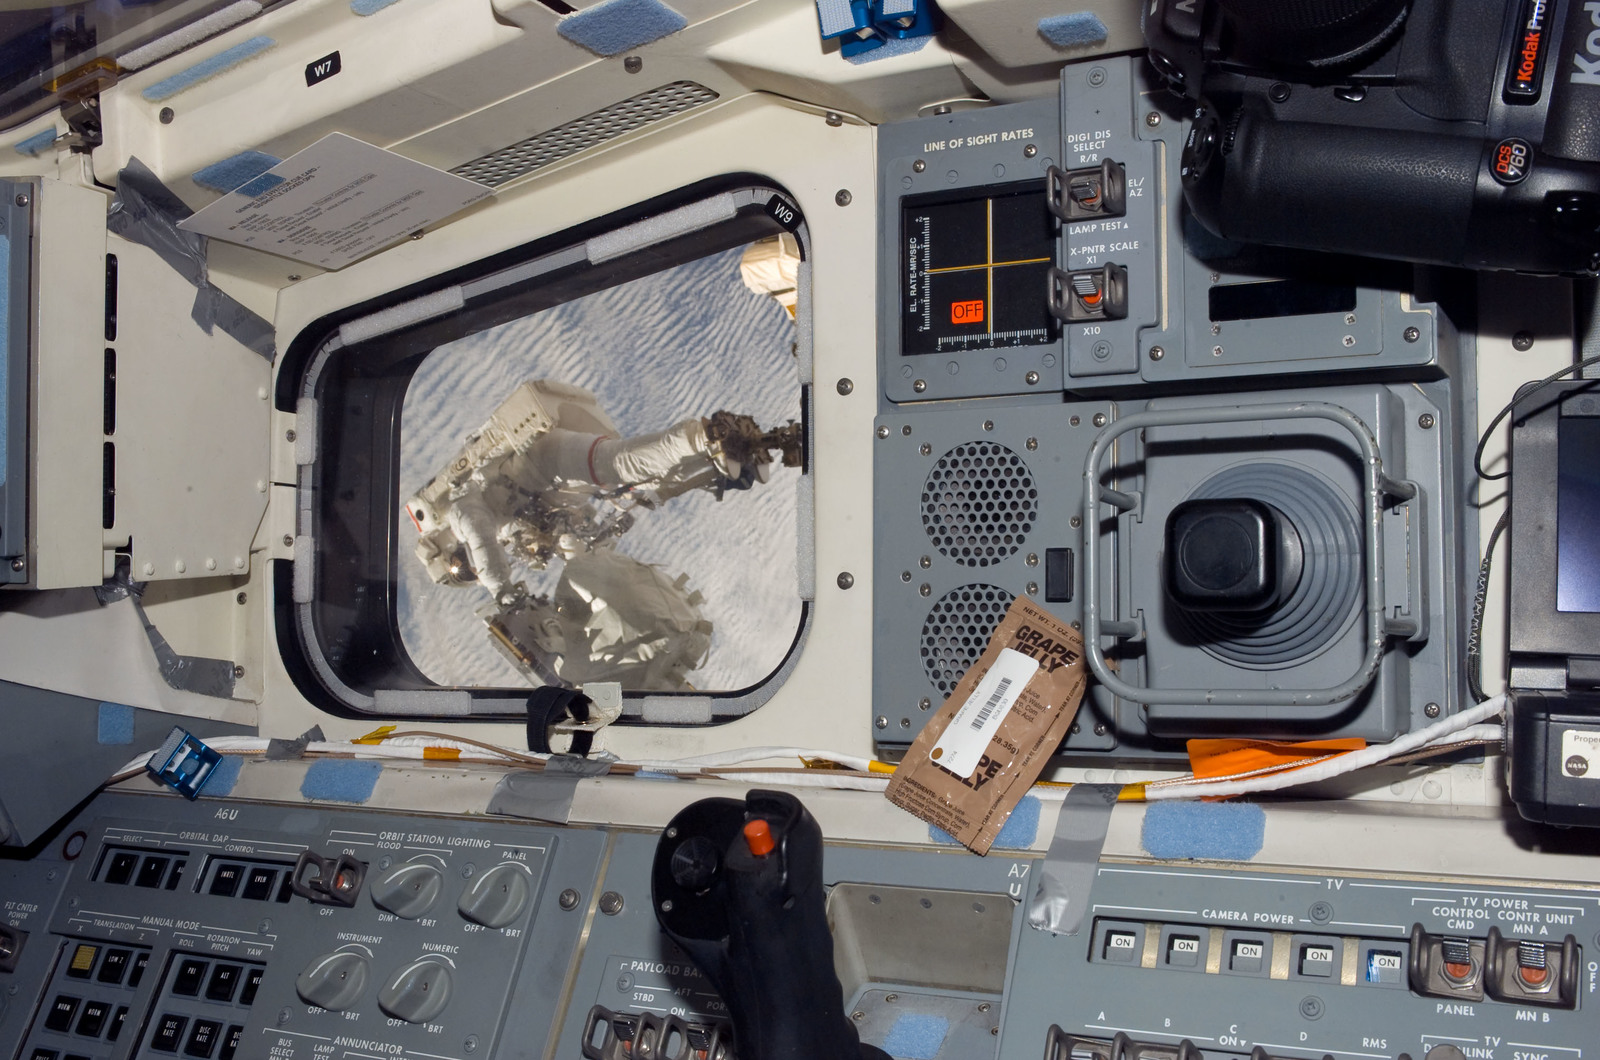 S123E006751 - STS-123 - Linnehan anchored to a Canadarrm2 mobile foot restraint during Expedition 16 / STS-123 Joint Operations